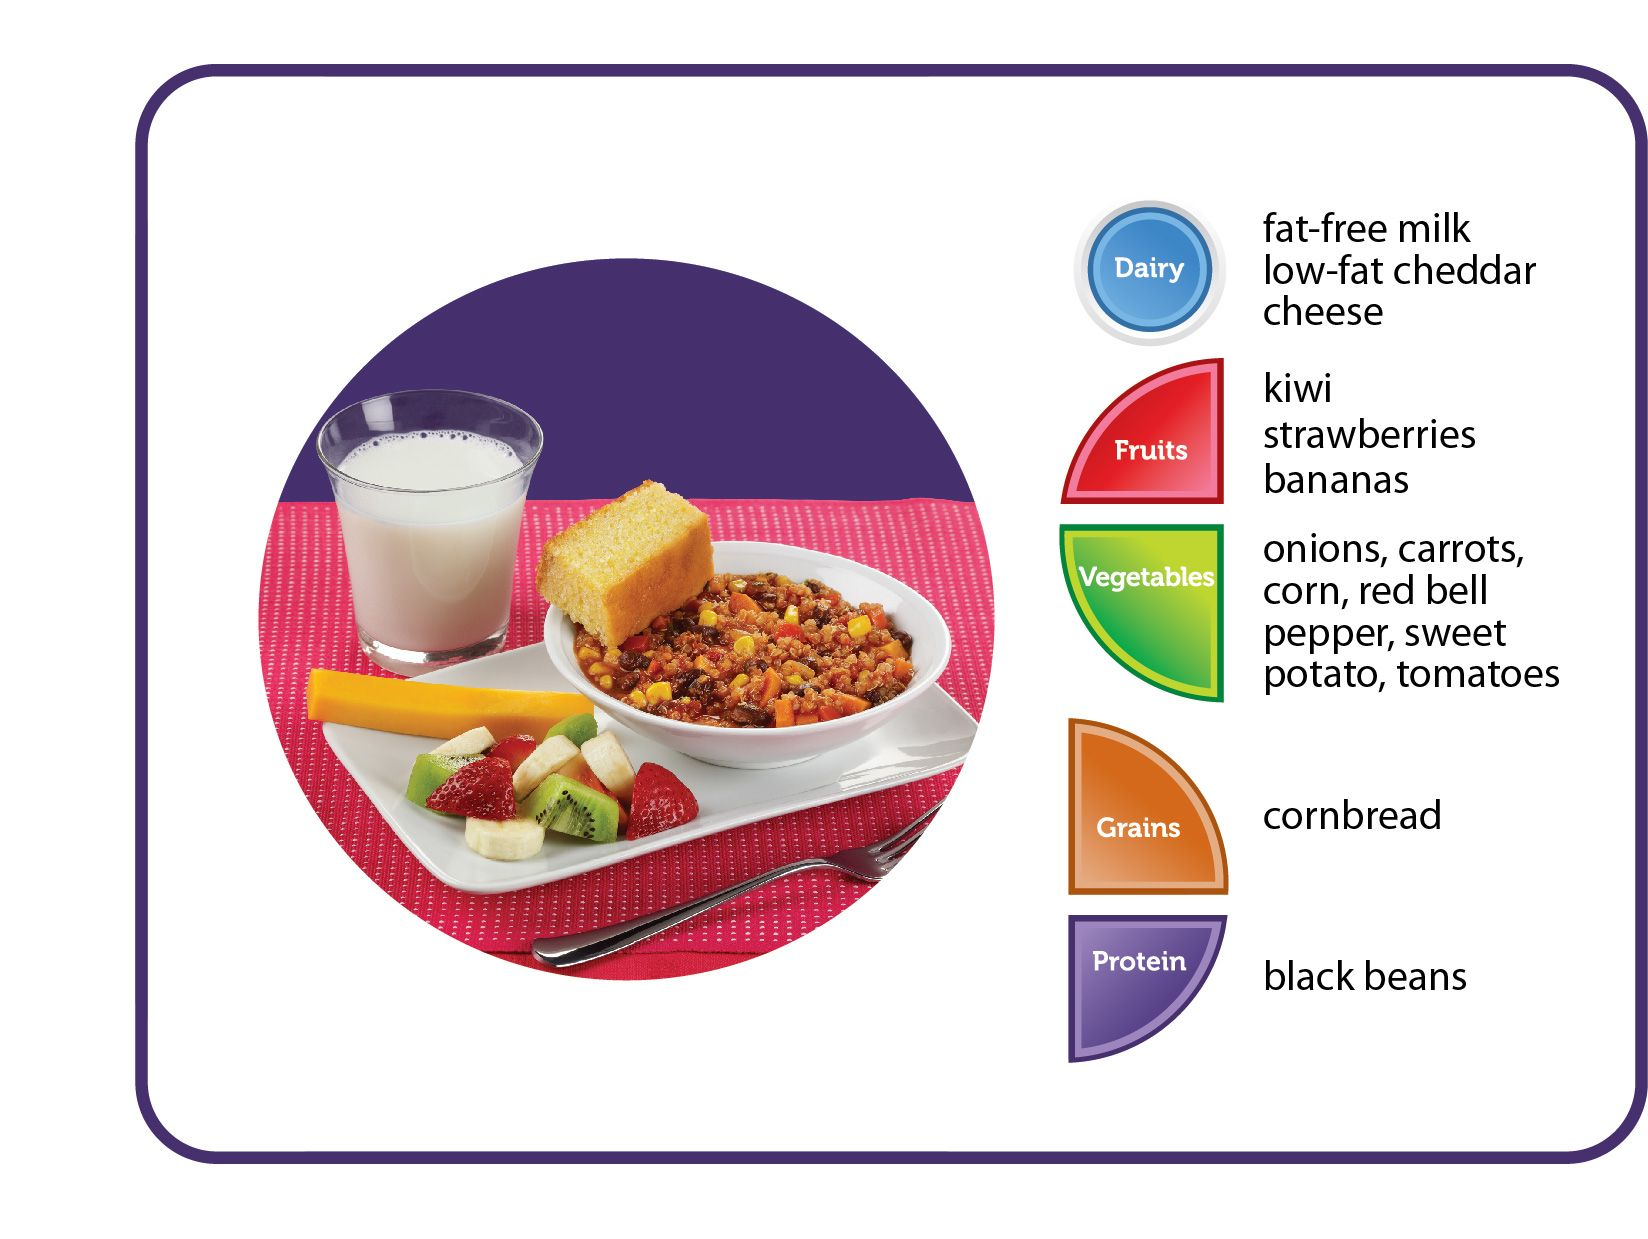 How many food groups are in YOUR lunch? MyPlate Group